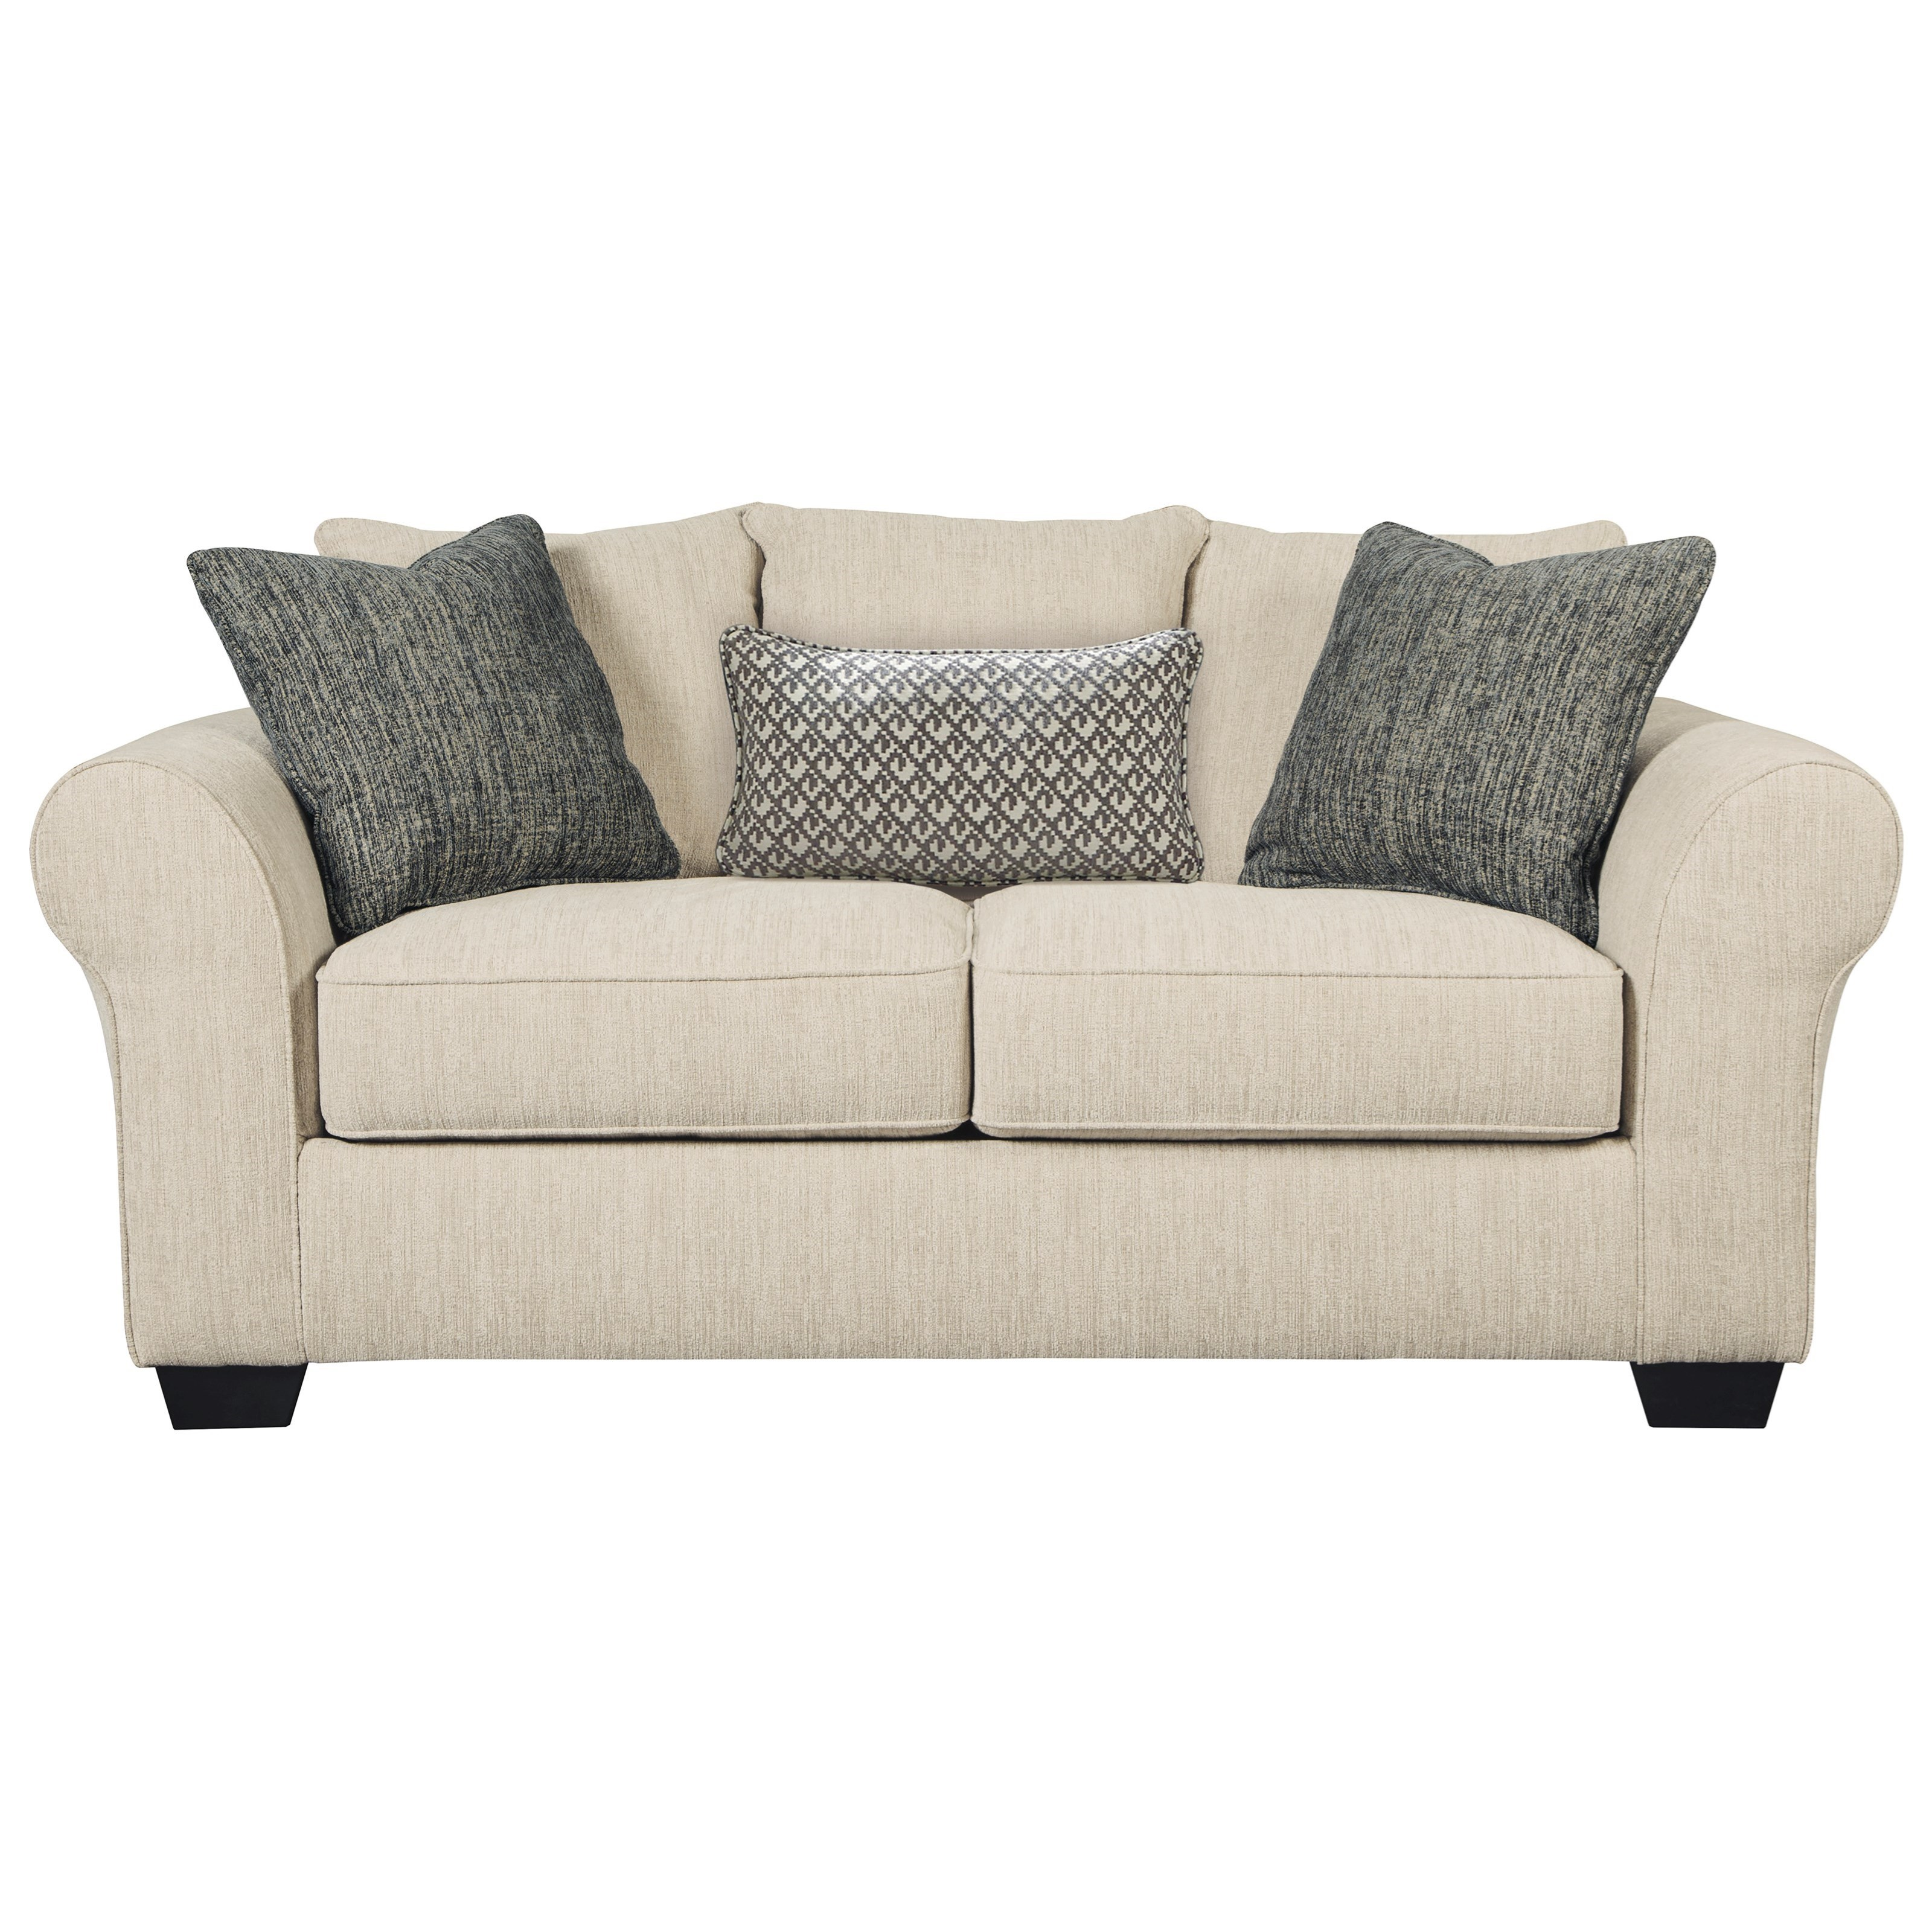 Benchcraft Silsbee Loveseat - Item Number: 5540235